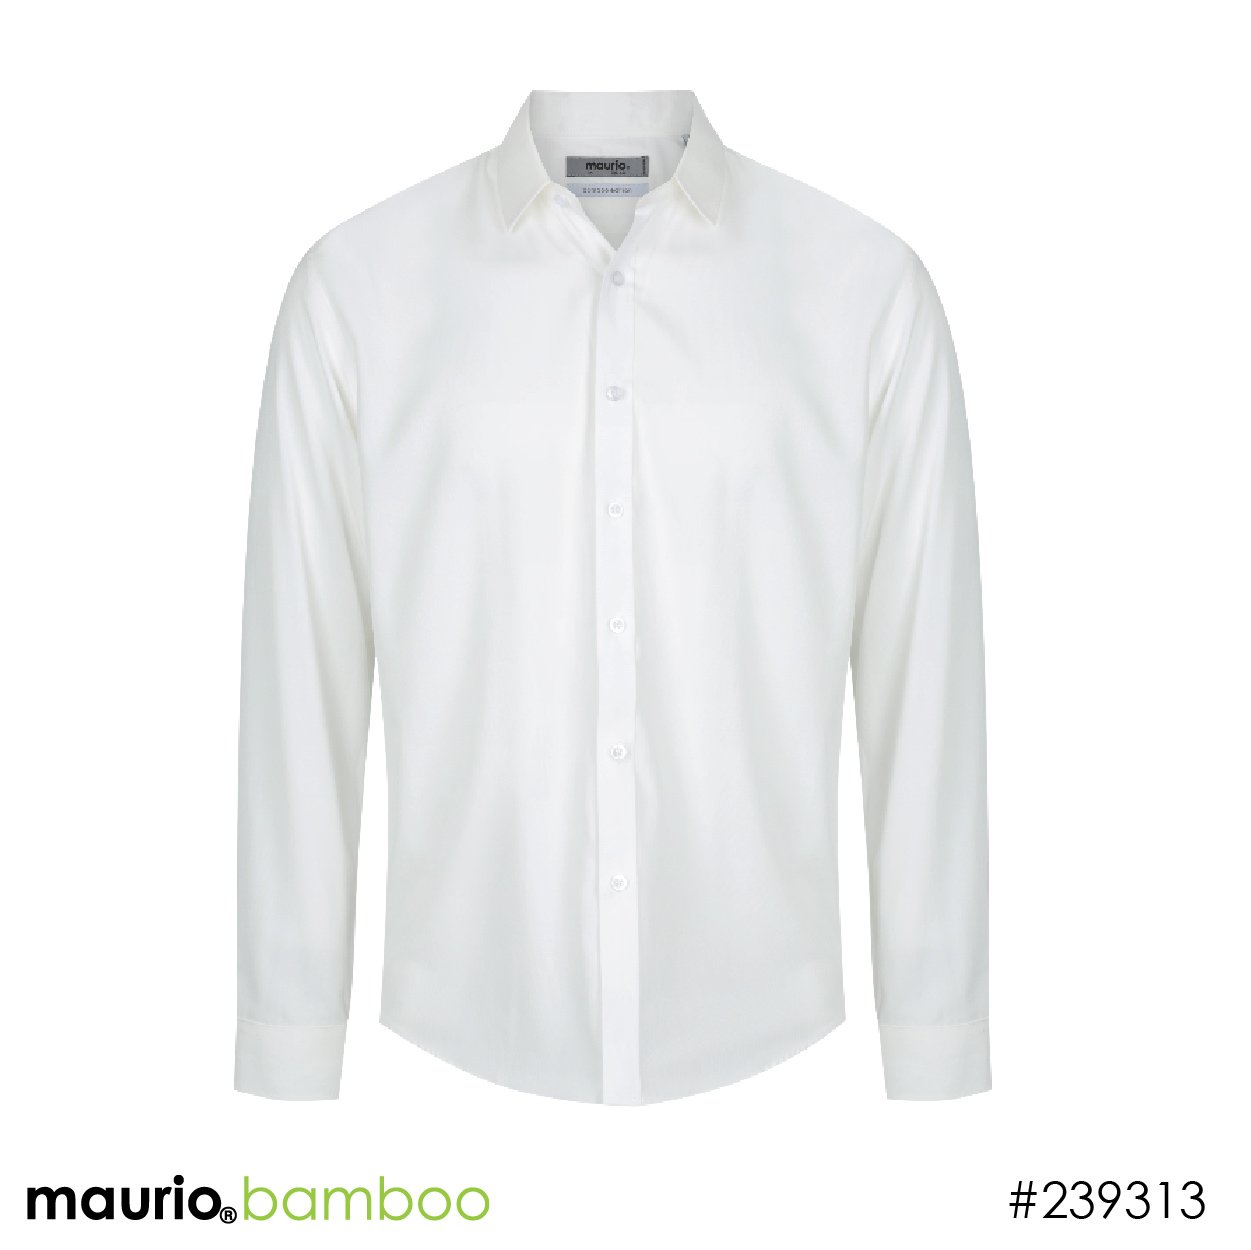 Dress shirt bamboo fabric - off white